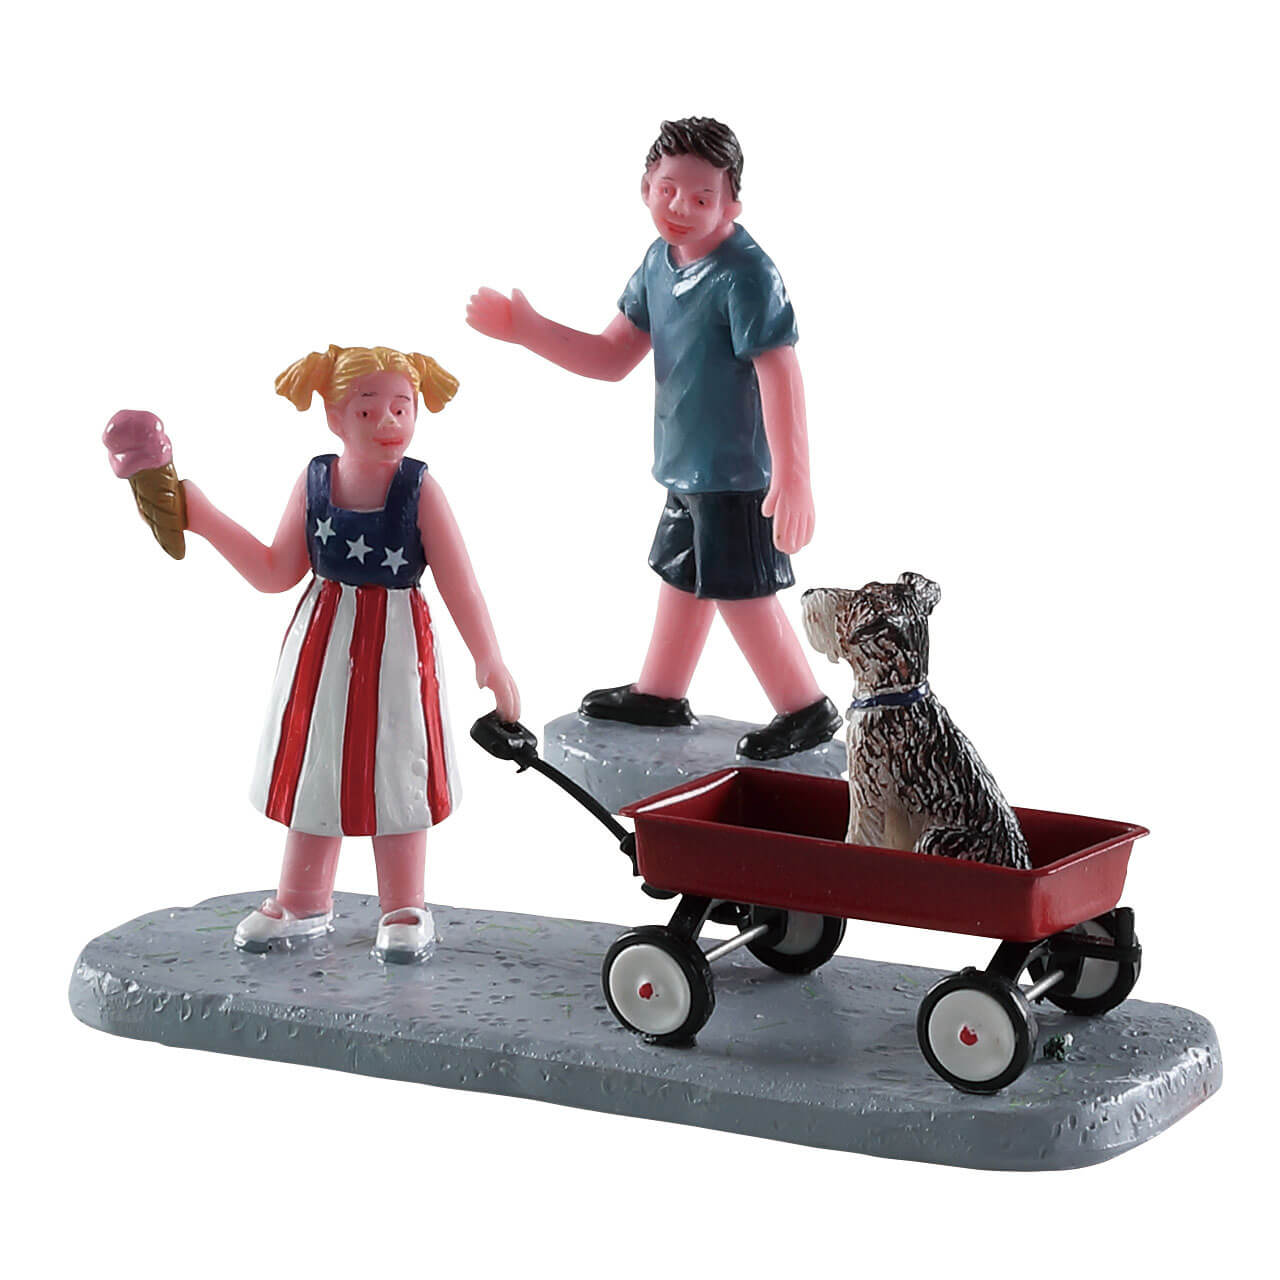 Lemax Village Collection Wagon Ride, Set of 2 # 82598